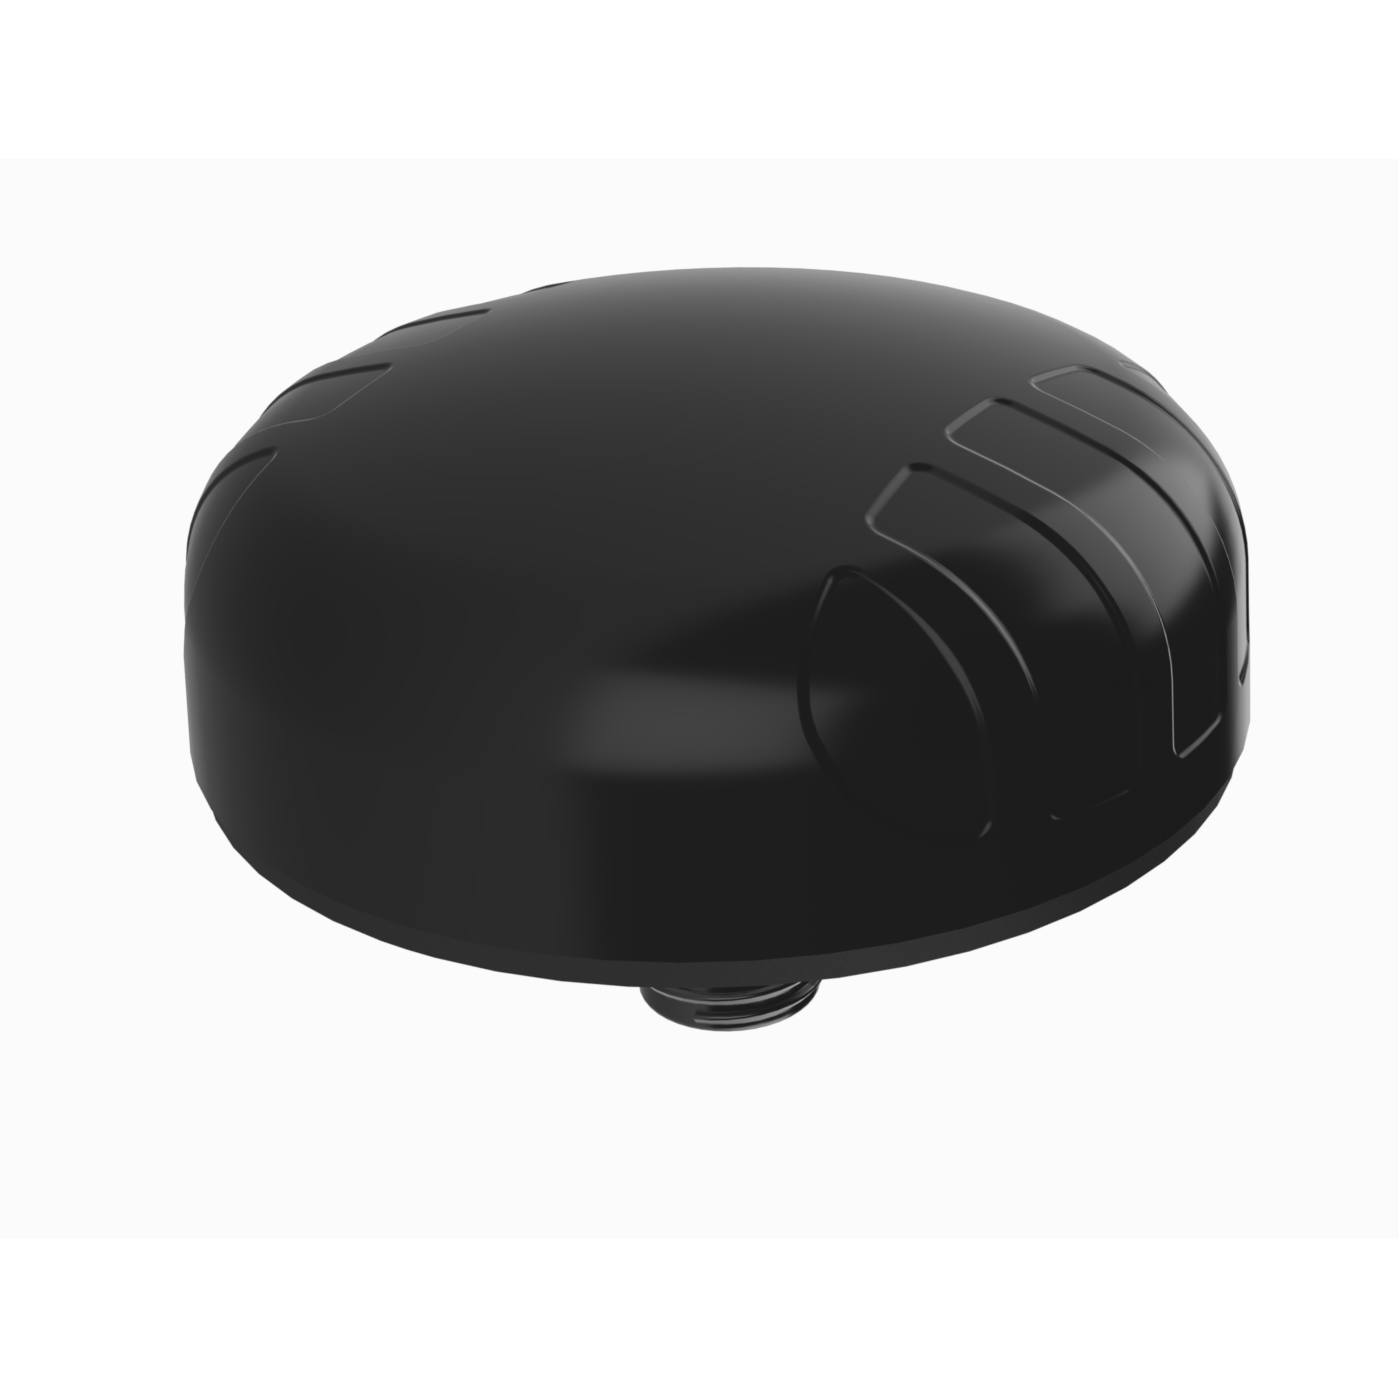 PUCK-5: 5-IN-1 ANTENNA; 2×2 MIMO LTE: 690 MHZ – 3800 MHZ, 2×2 MIMO WI-FI: DUALBAND 2.4 – 2.5 & 5-6 GHZ, GPS/GLONASS: 1575.42/1600 MHZ